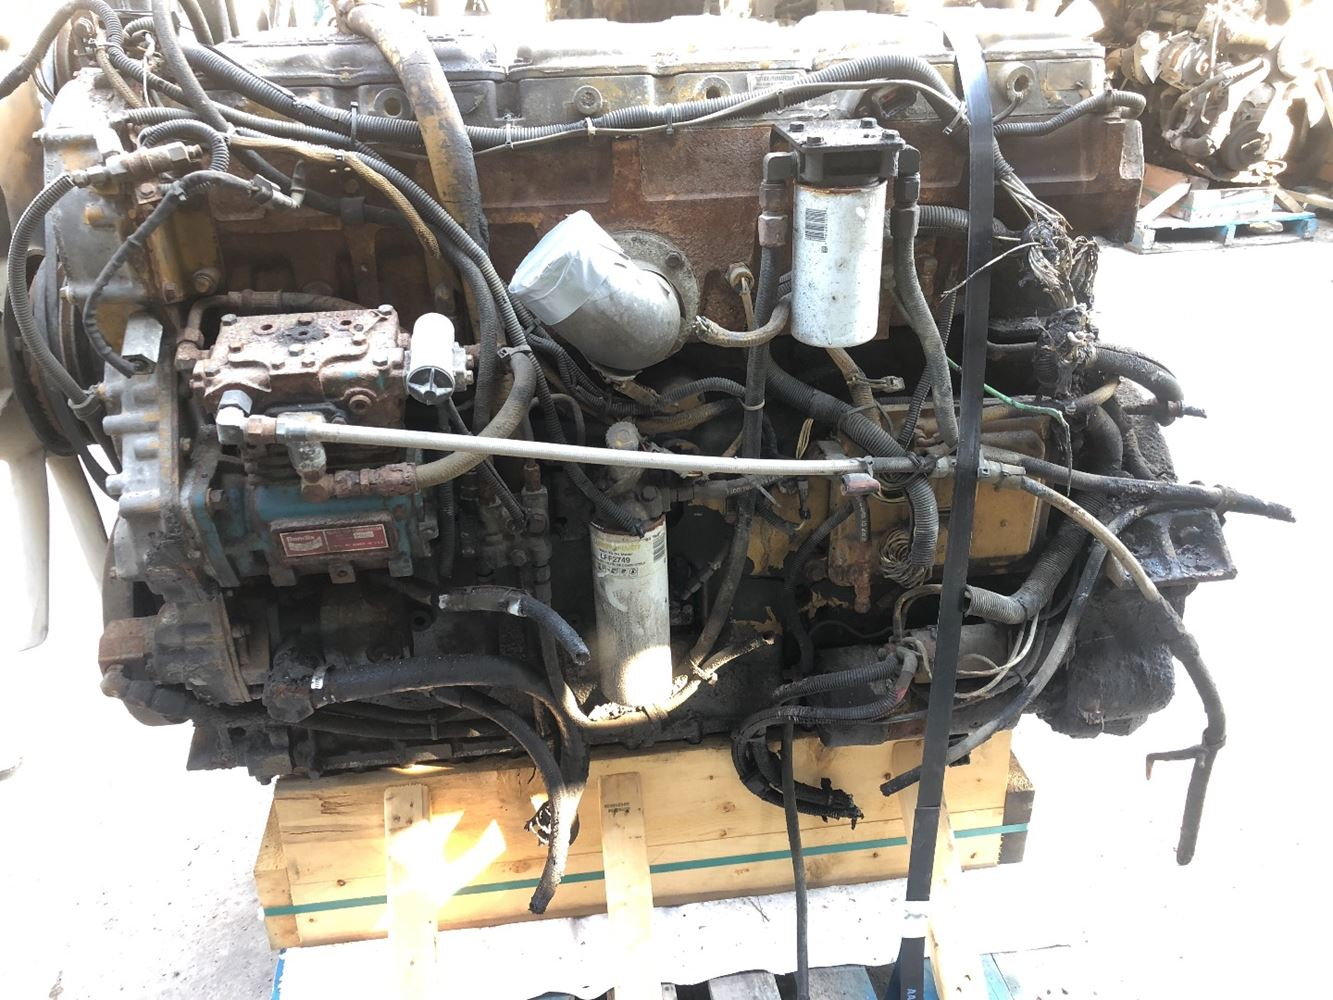 1996 Caterpillar 3406e Stock 8301 Engine Assys Tpi Wiring For Image Subject To Change